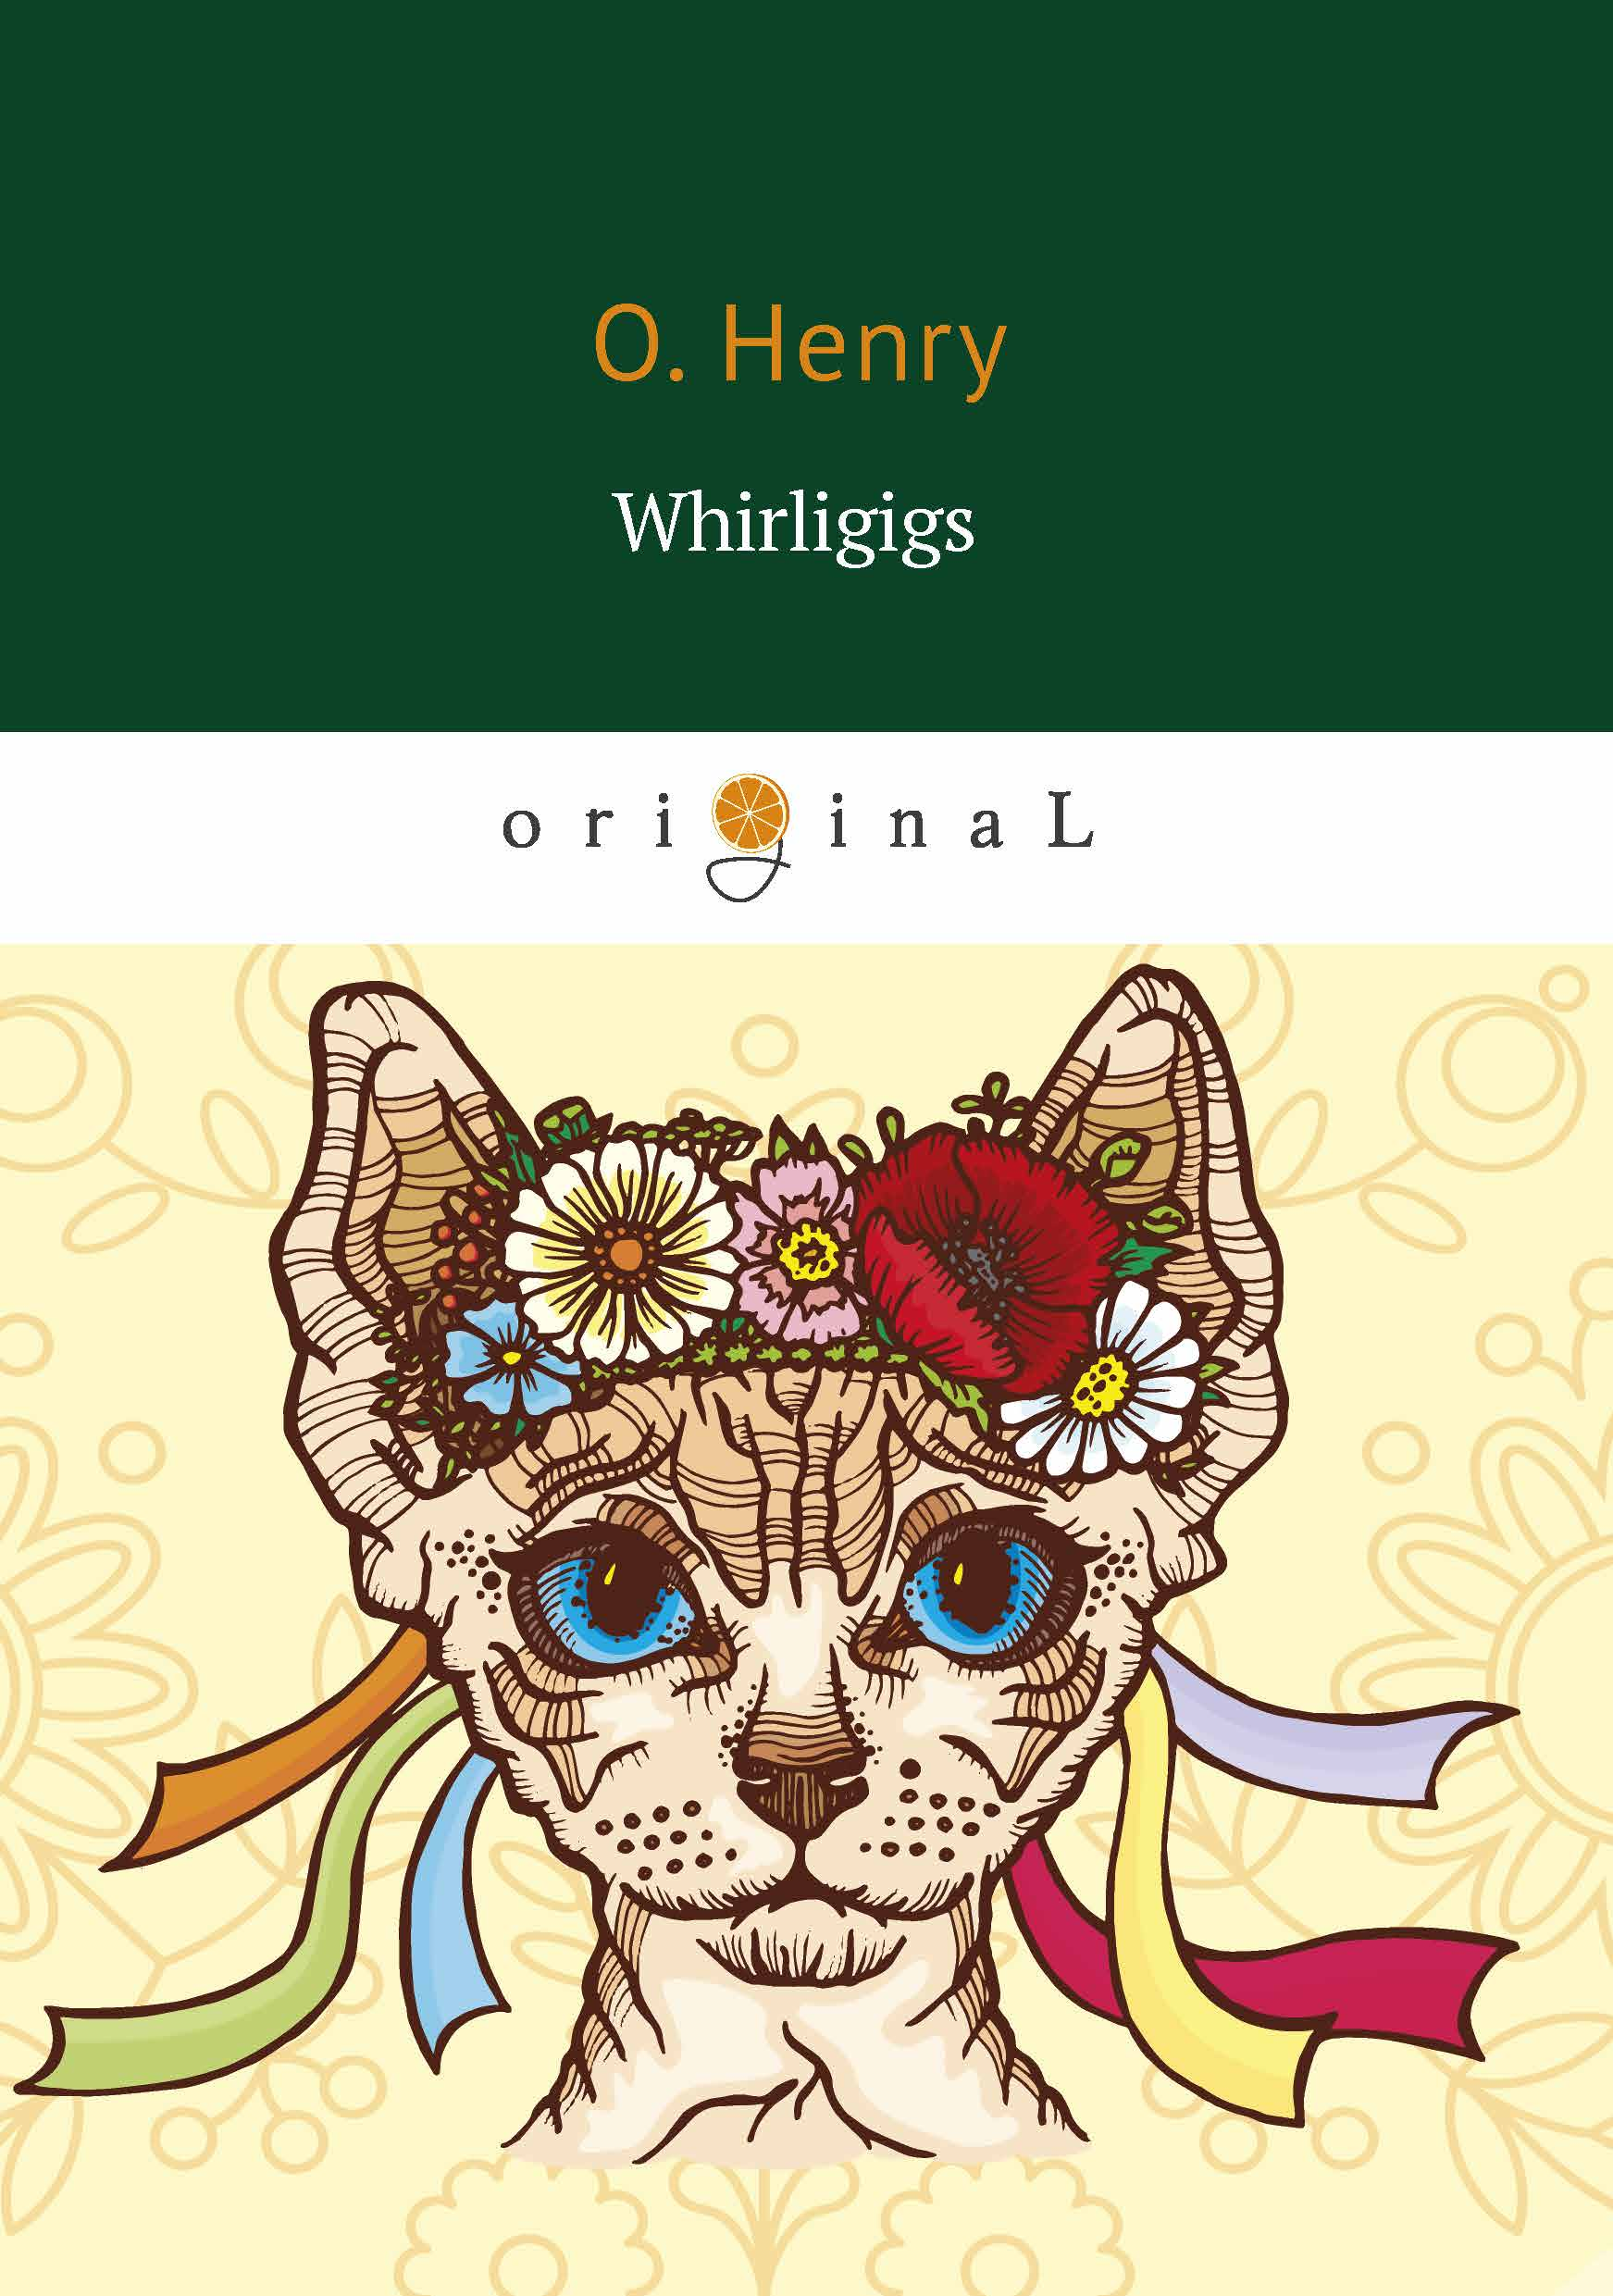 Фото - O. Henry Whirligigs ISBN: 978-5-521-07061-9 o henry the voice of the city isbn 978 5 521 07057 2